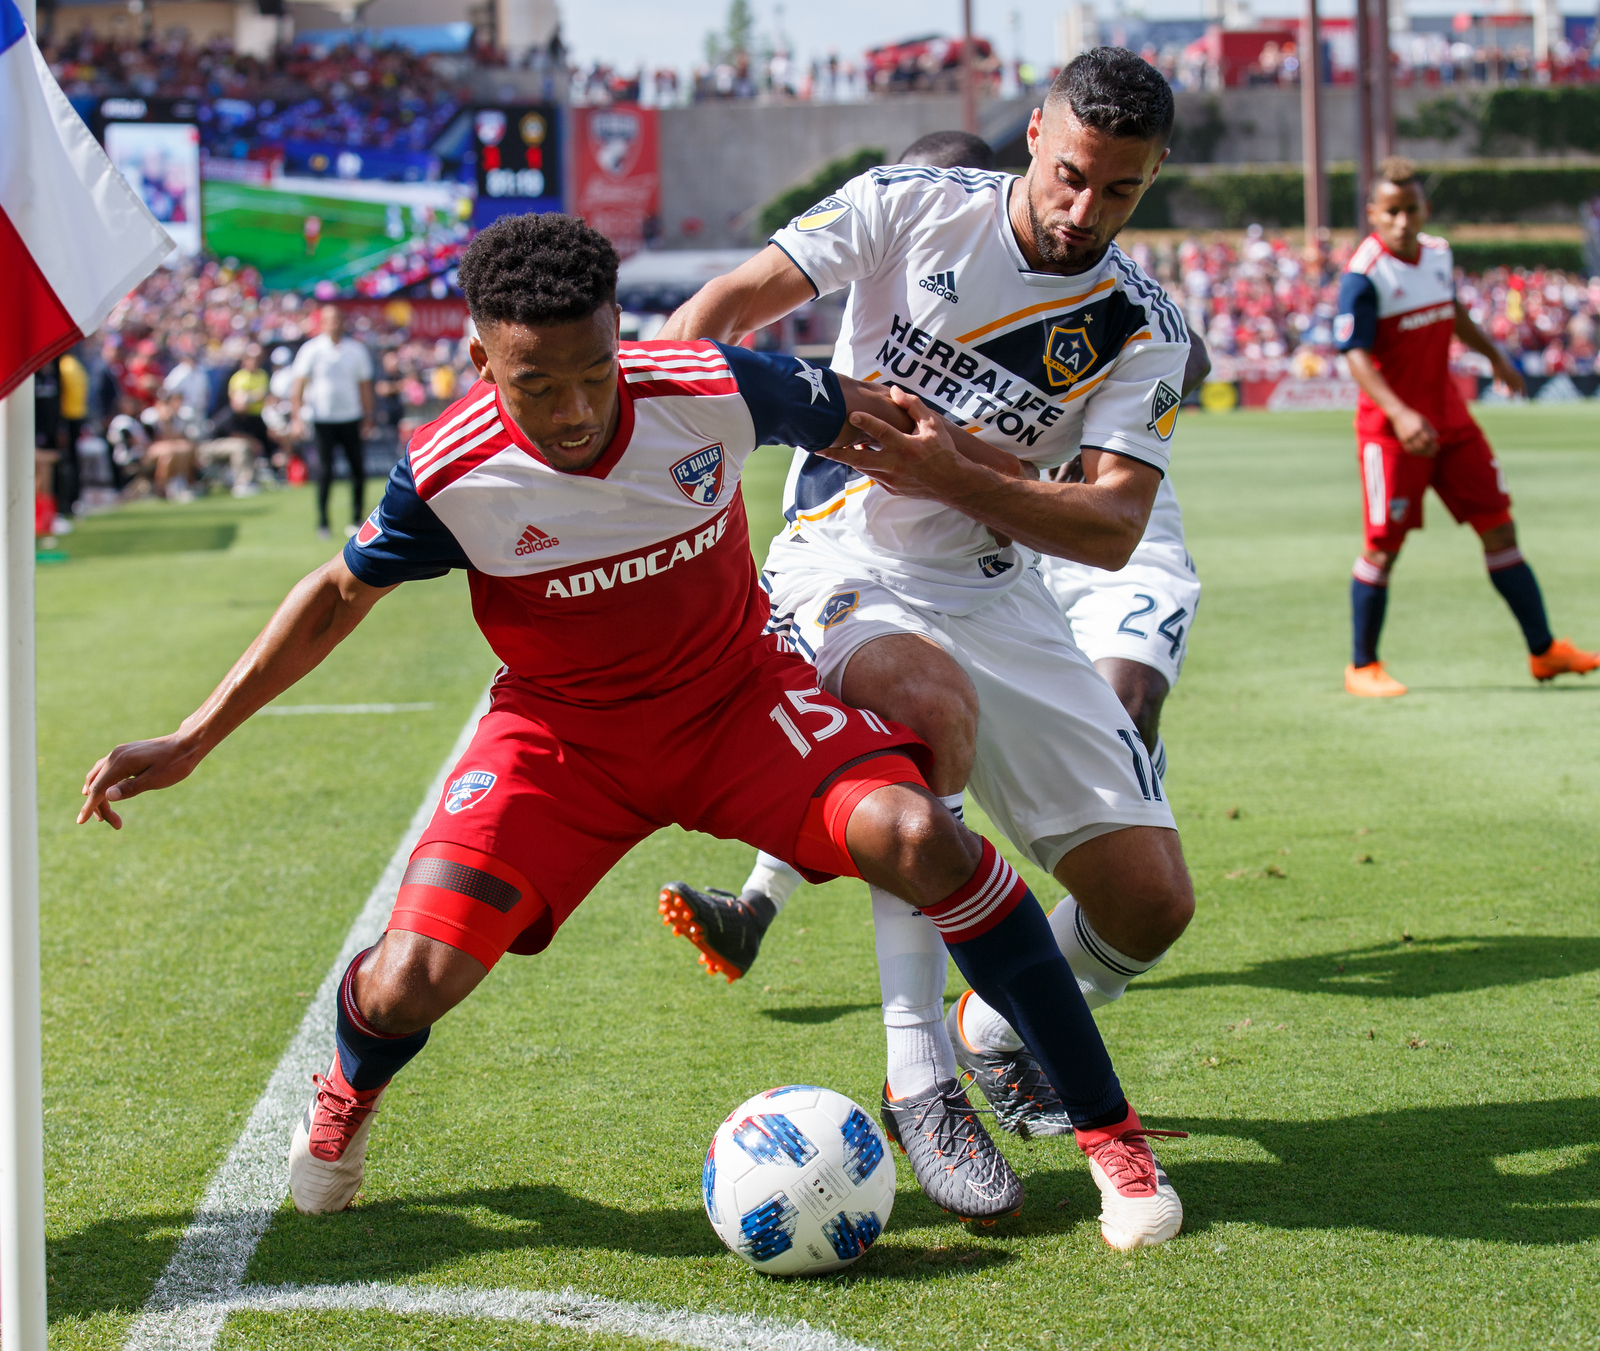 Match Photos: LA Galaxy at FC Dallas